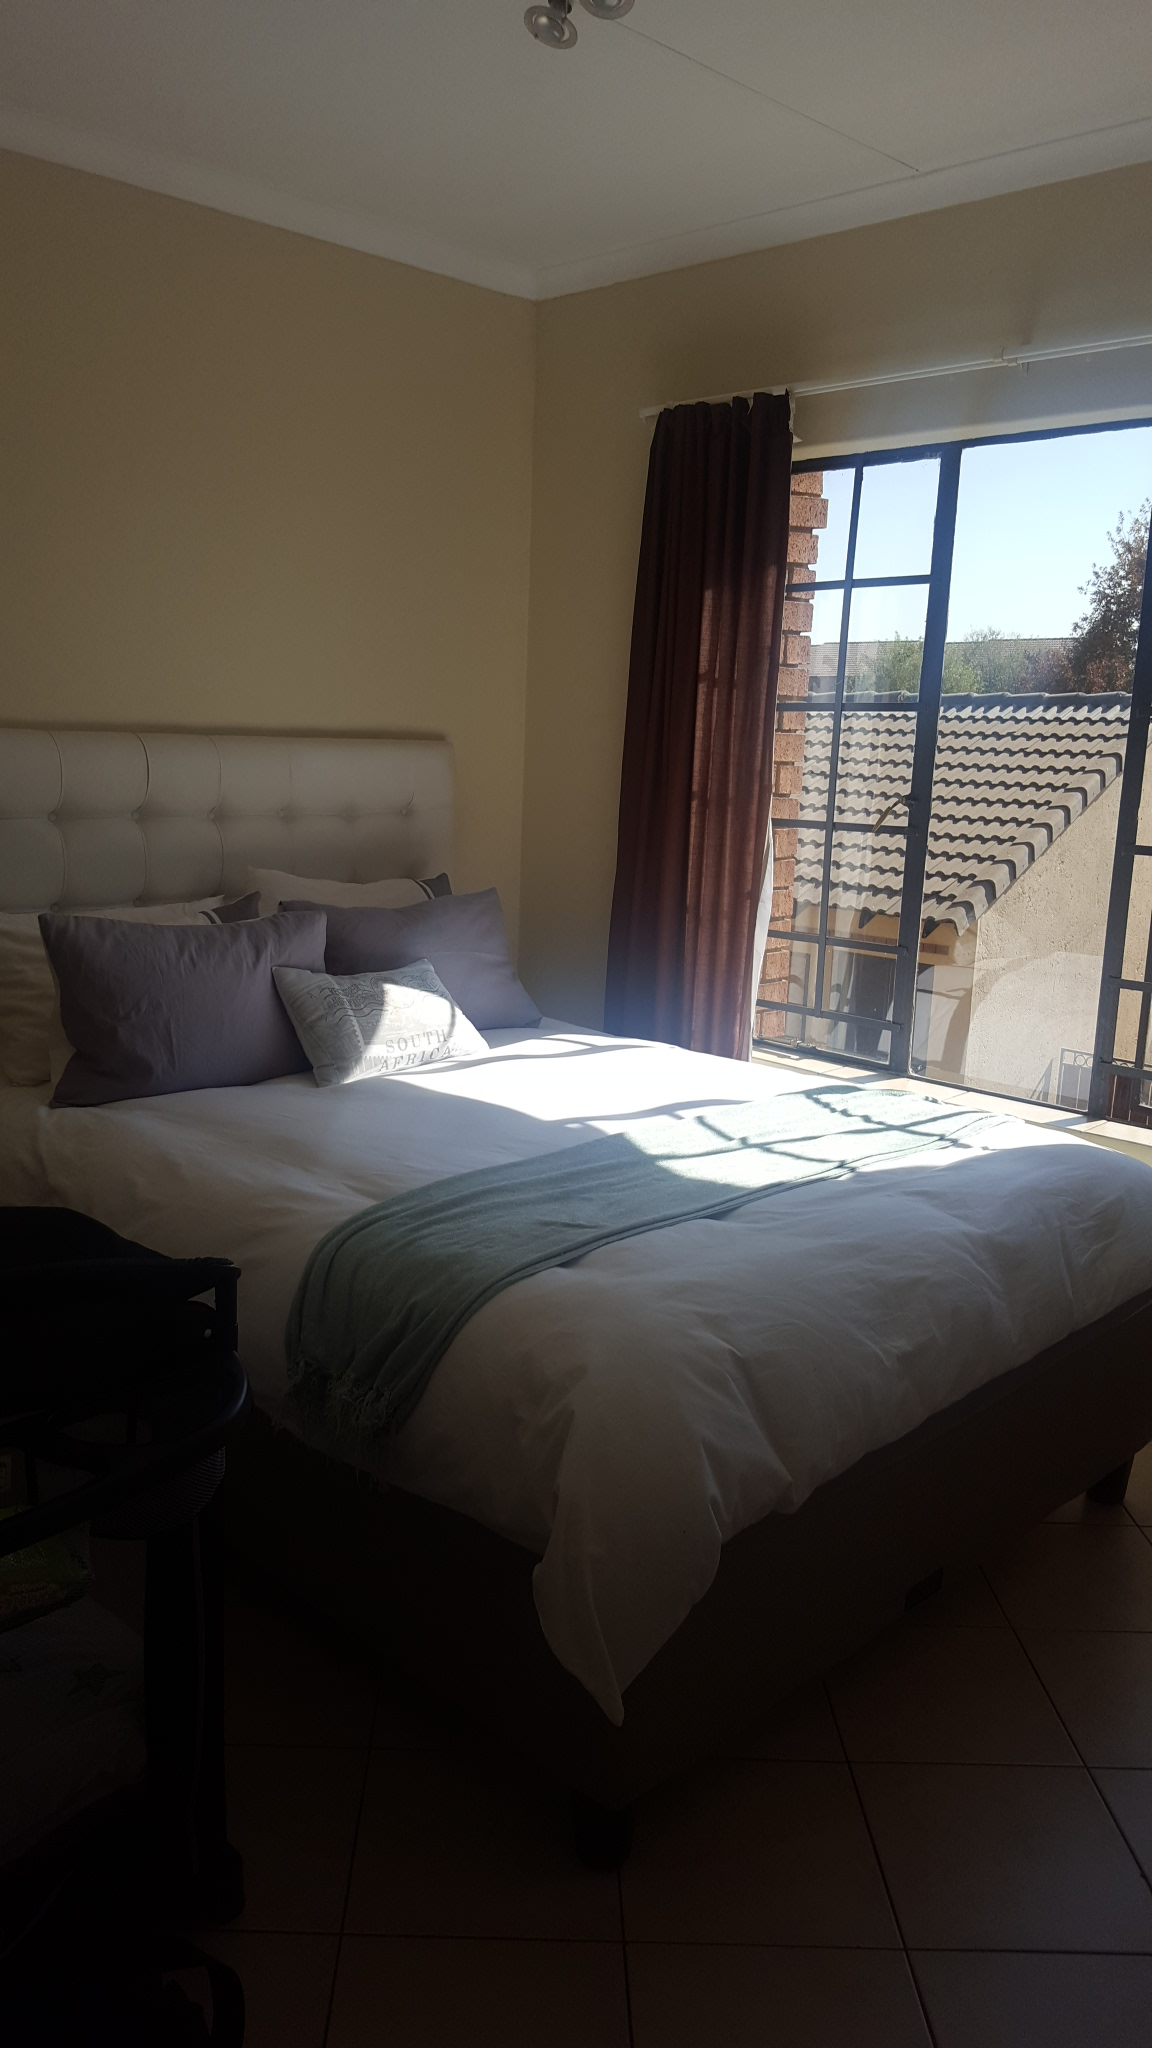 2 Bedroom Townhouse for sale in Mooikloof Ridge ENT0037652 : photo#6